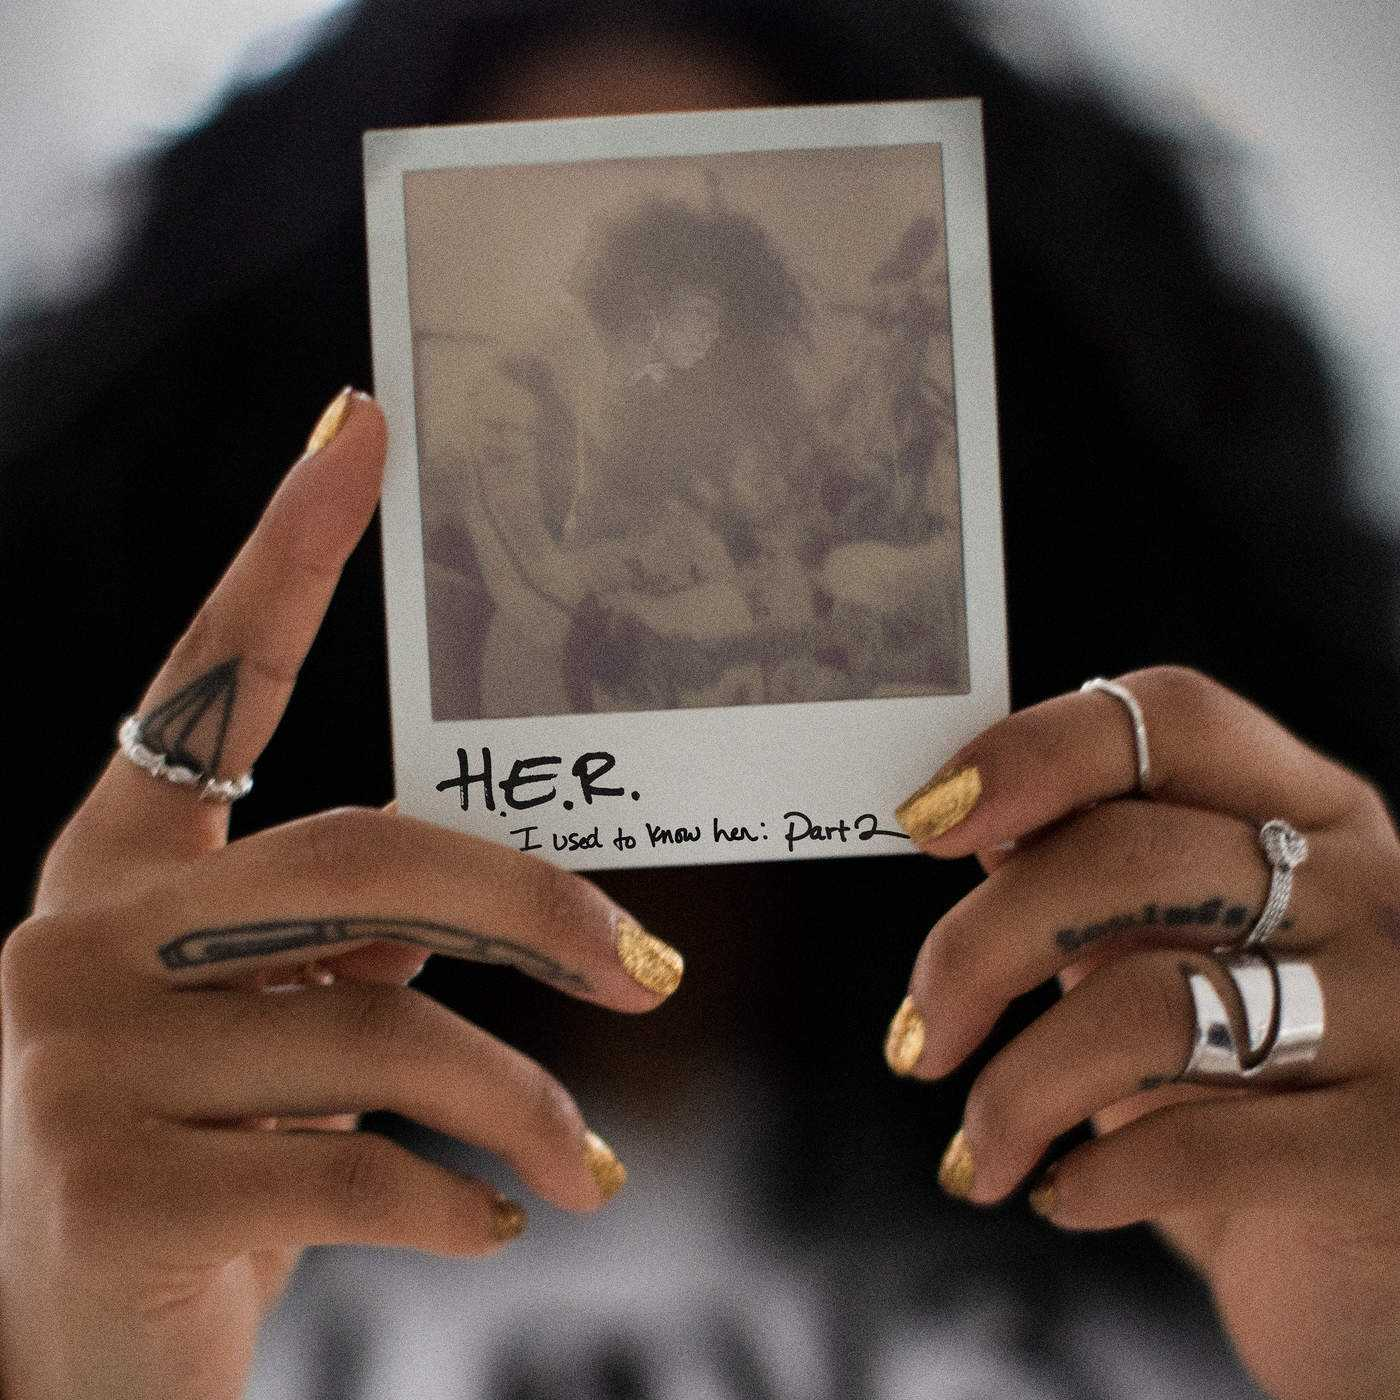 EP Stream: H.E.R. | I Used to Know Her: Part 2 [Audio]